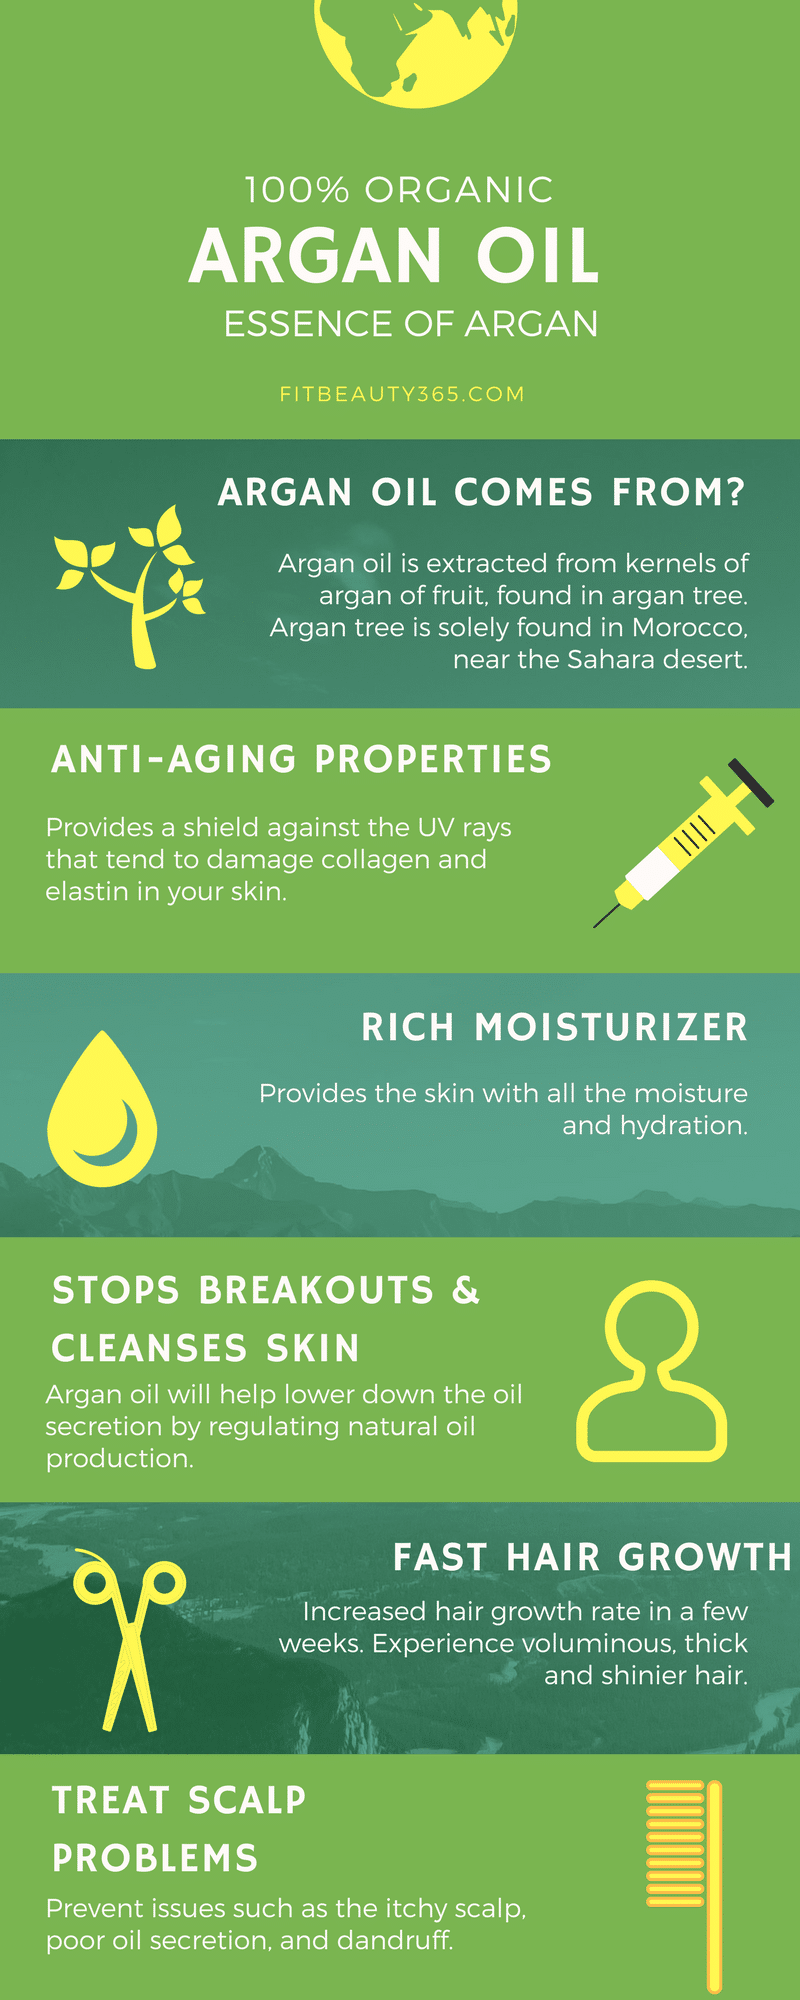 essence-of-argan-infographic-fitbeauty365